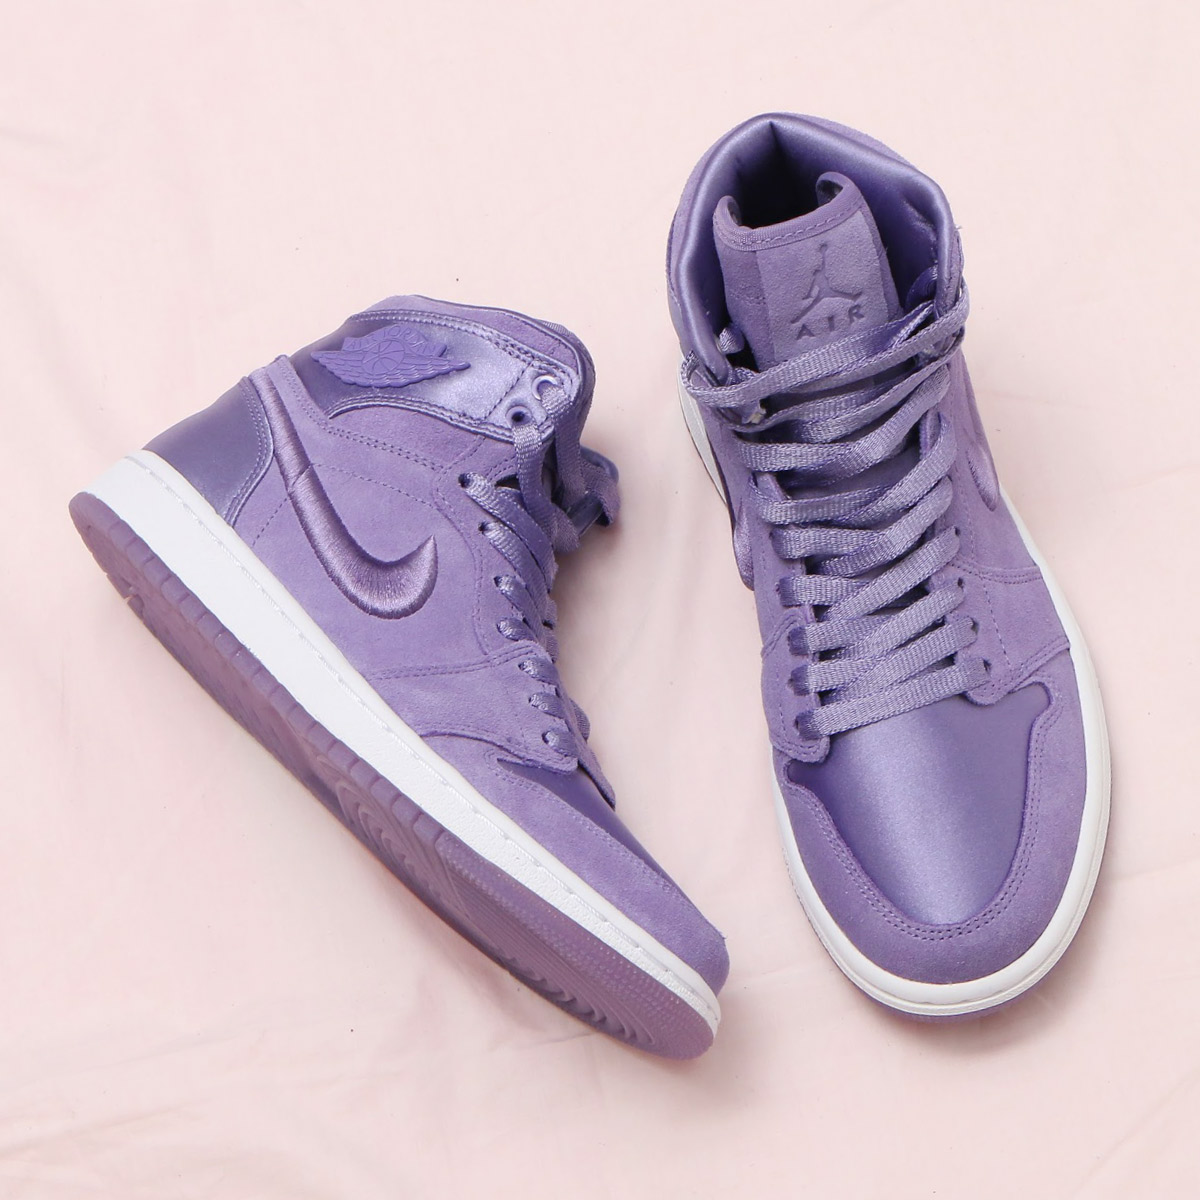 NIKE WMNS AIR JORDAN 1 RET HIGH SOH(ナイキ ウィメンズ エア ジョーダン 1 レトロ ハイ SOH)(PURPLE EARTH/WHITE-METALLIC GOLD)18SP-S